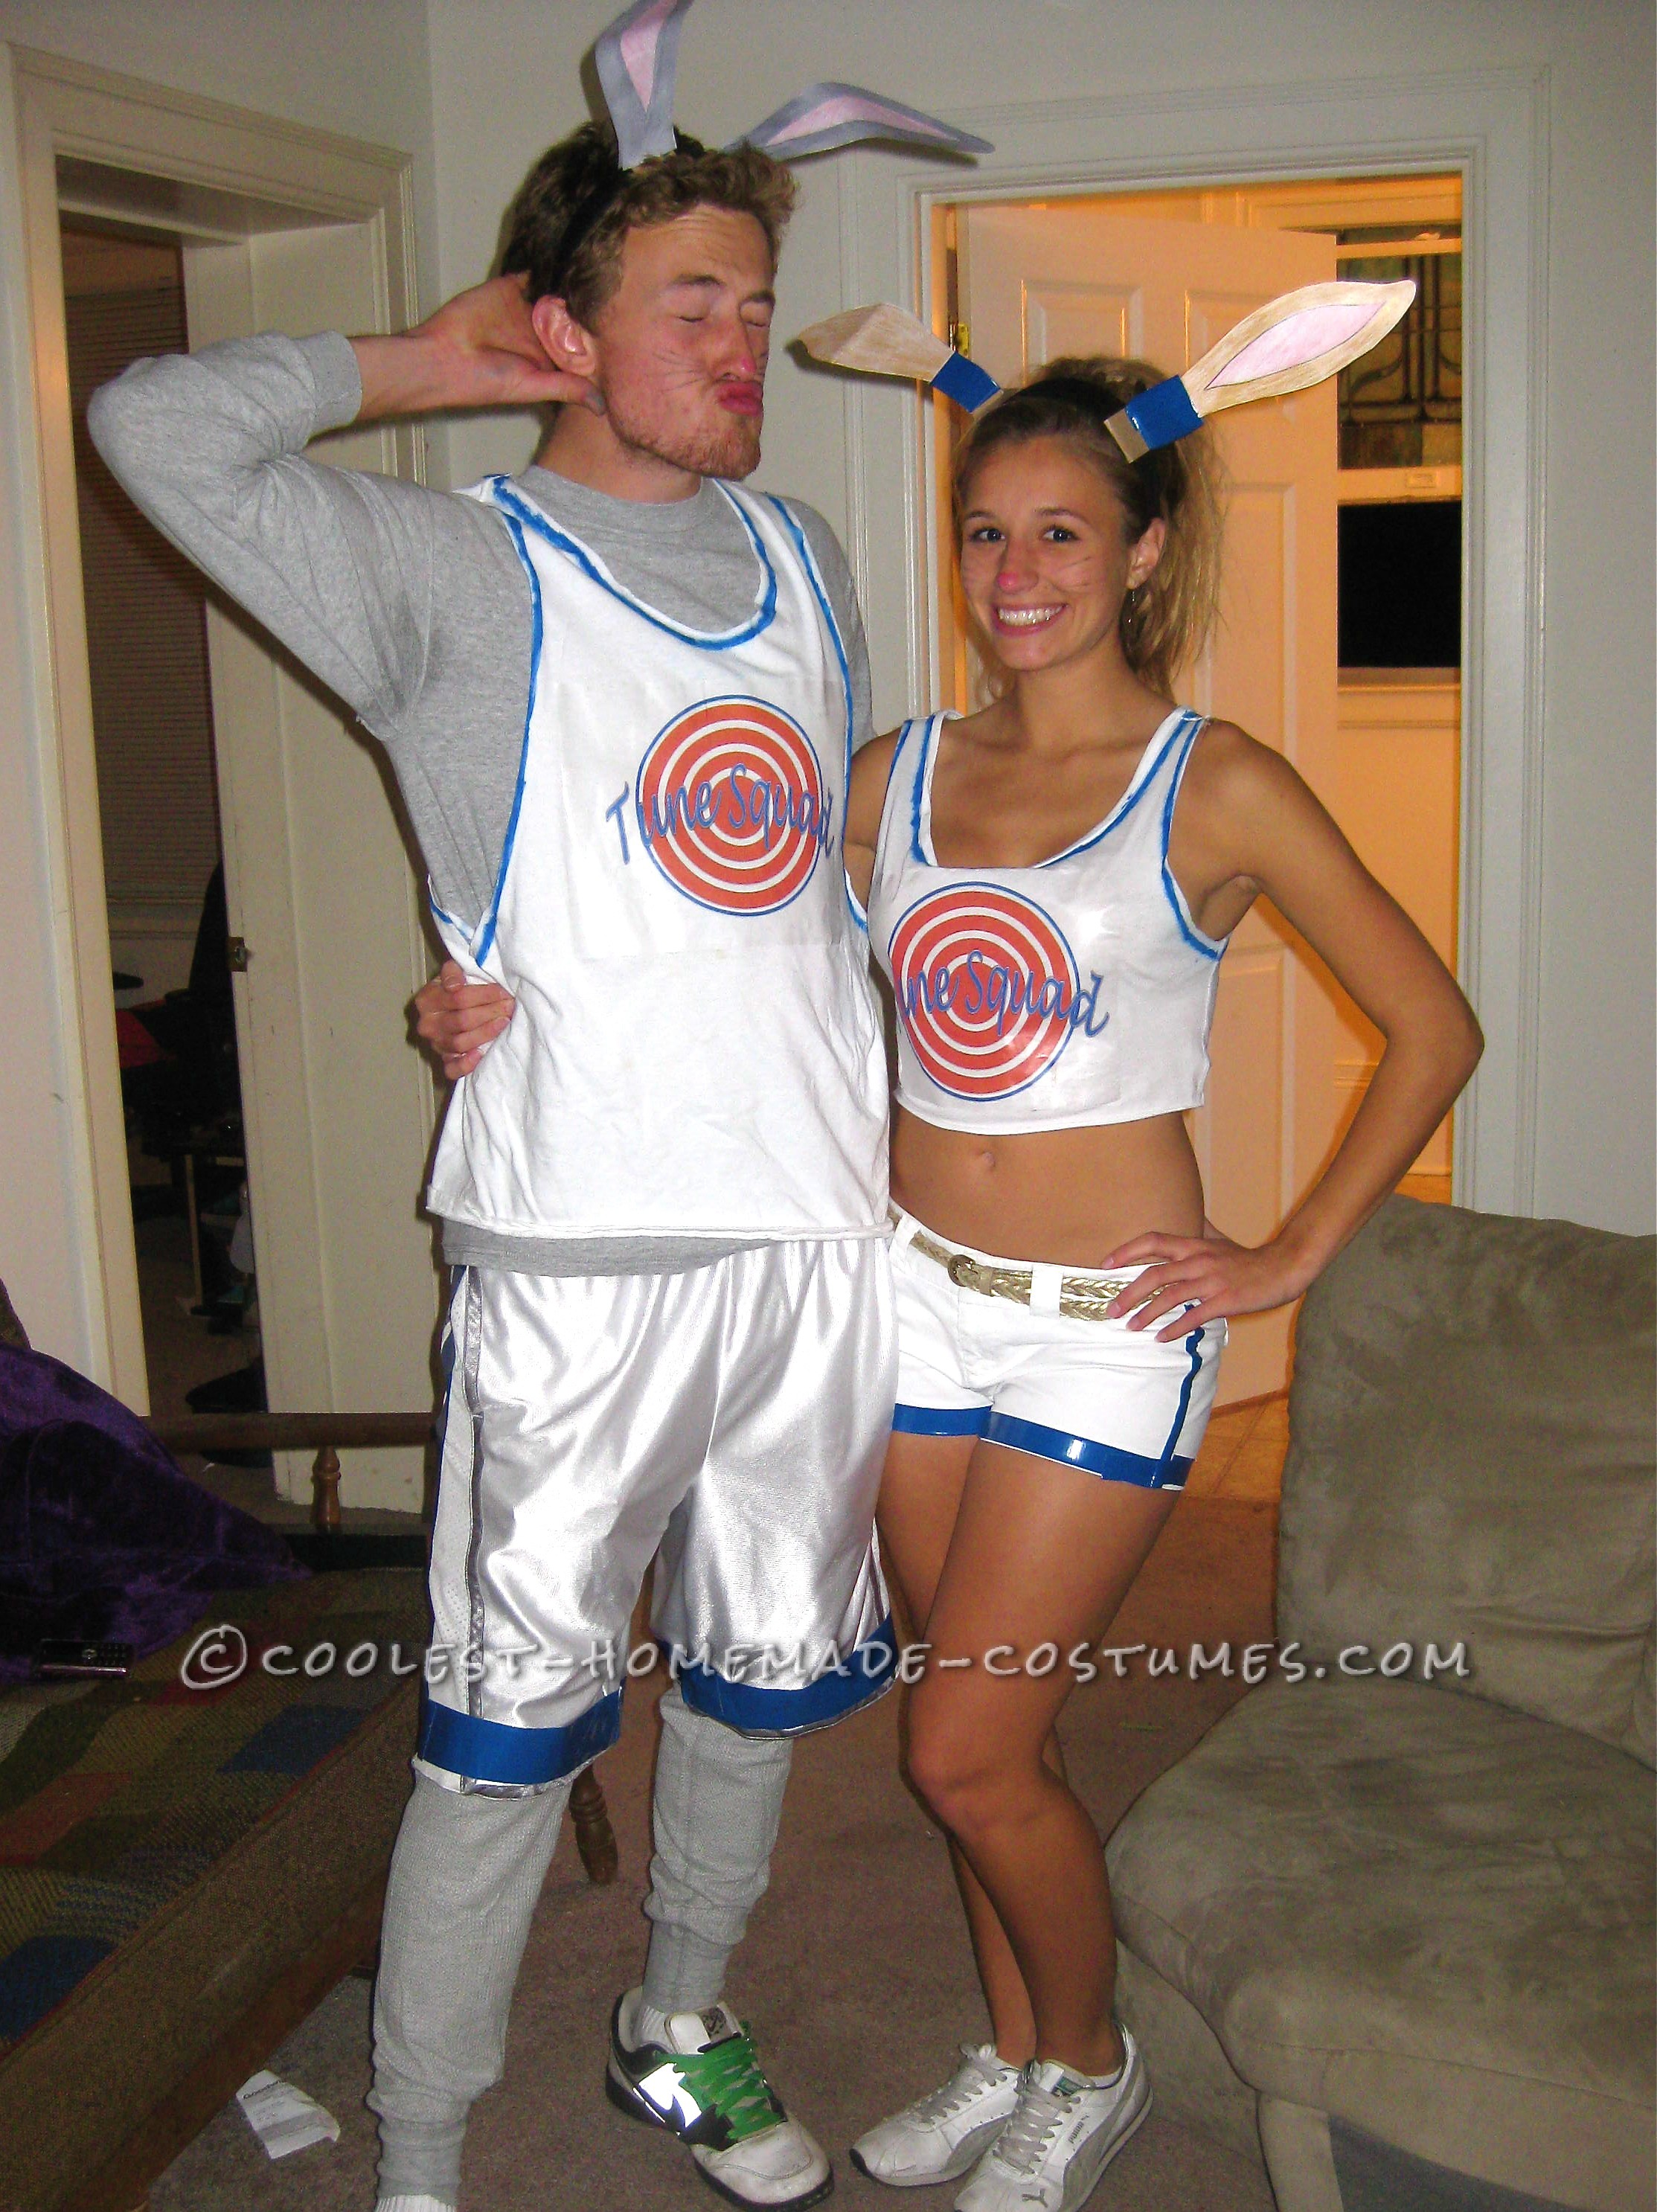 Perfect Coolest Homemade Costumes